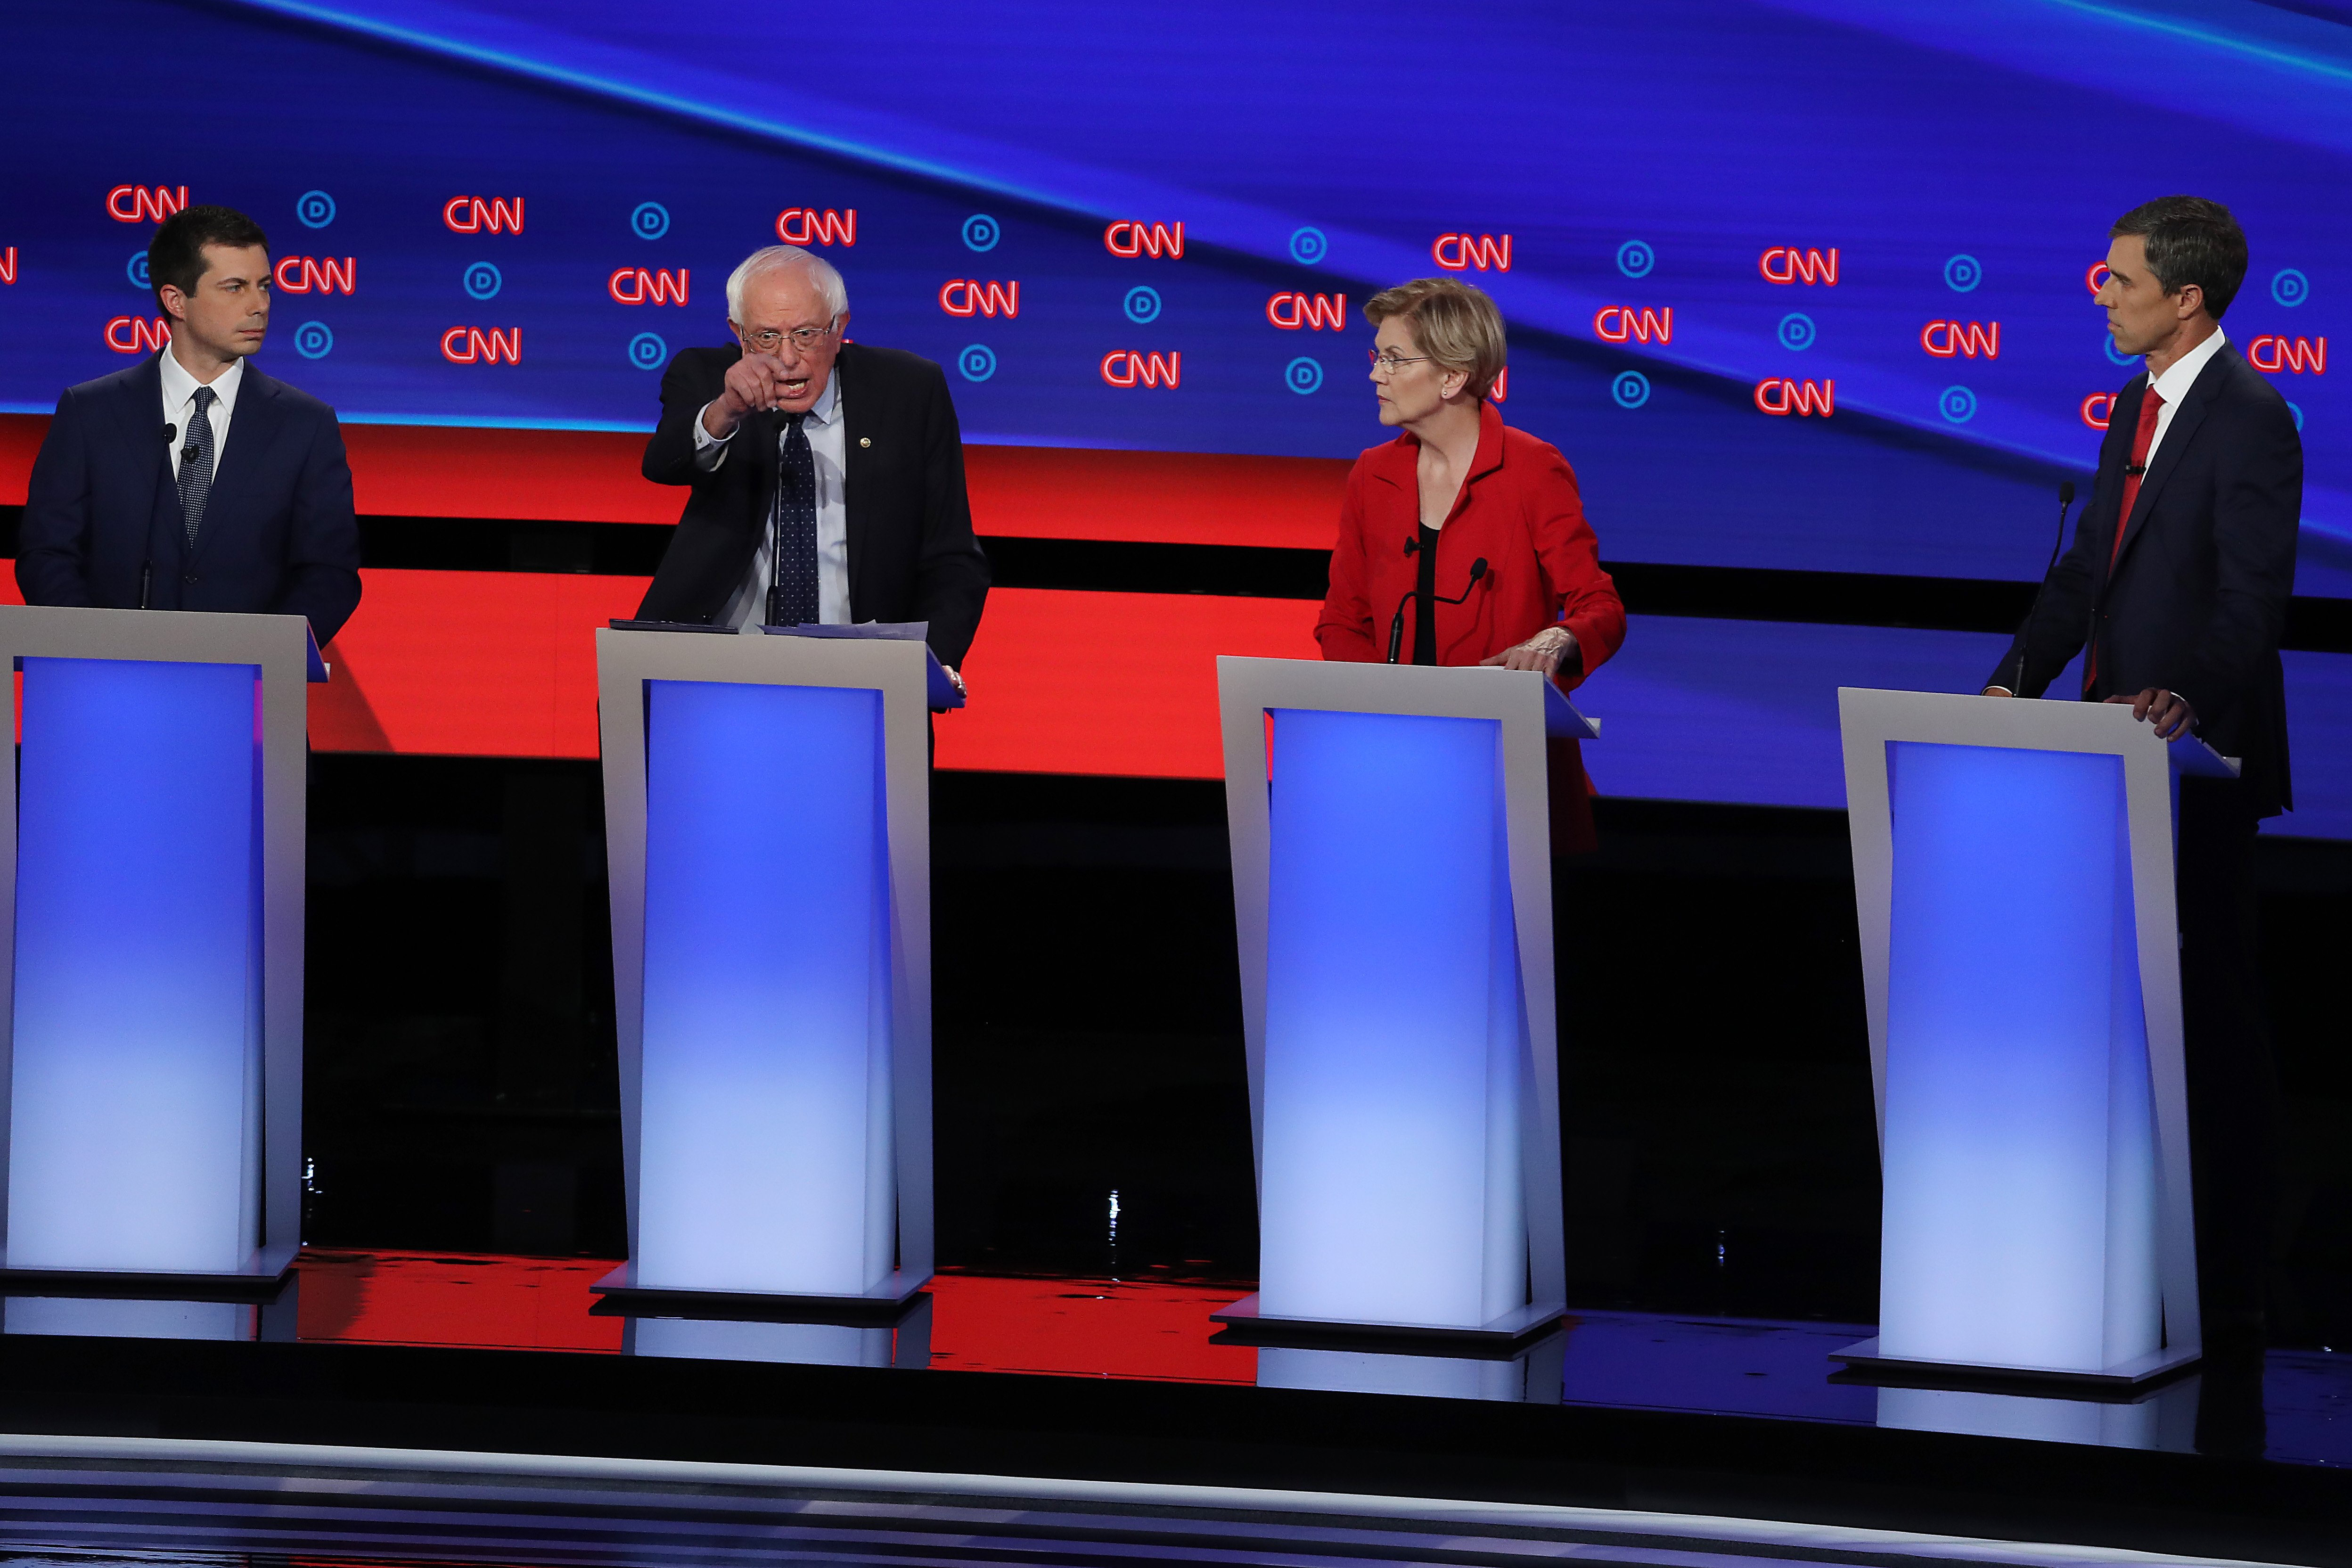 Fact check: Some Democratic presidential candidates want to ban fracking. Could they?